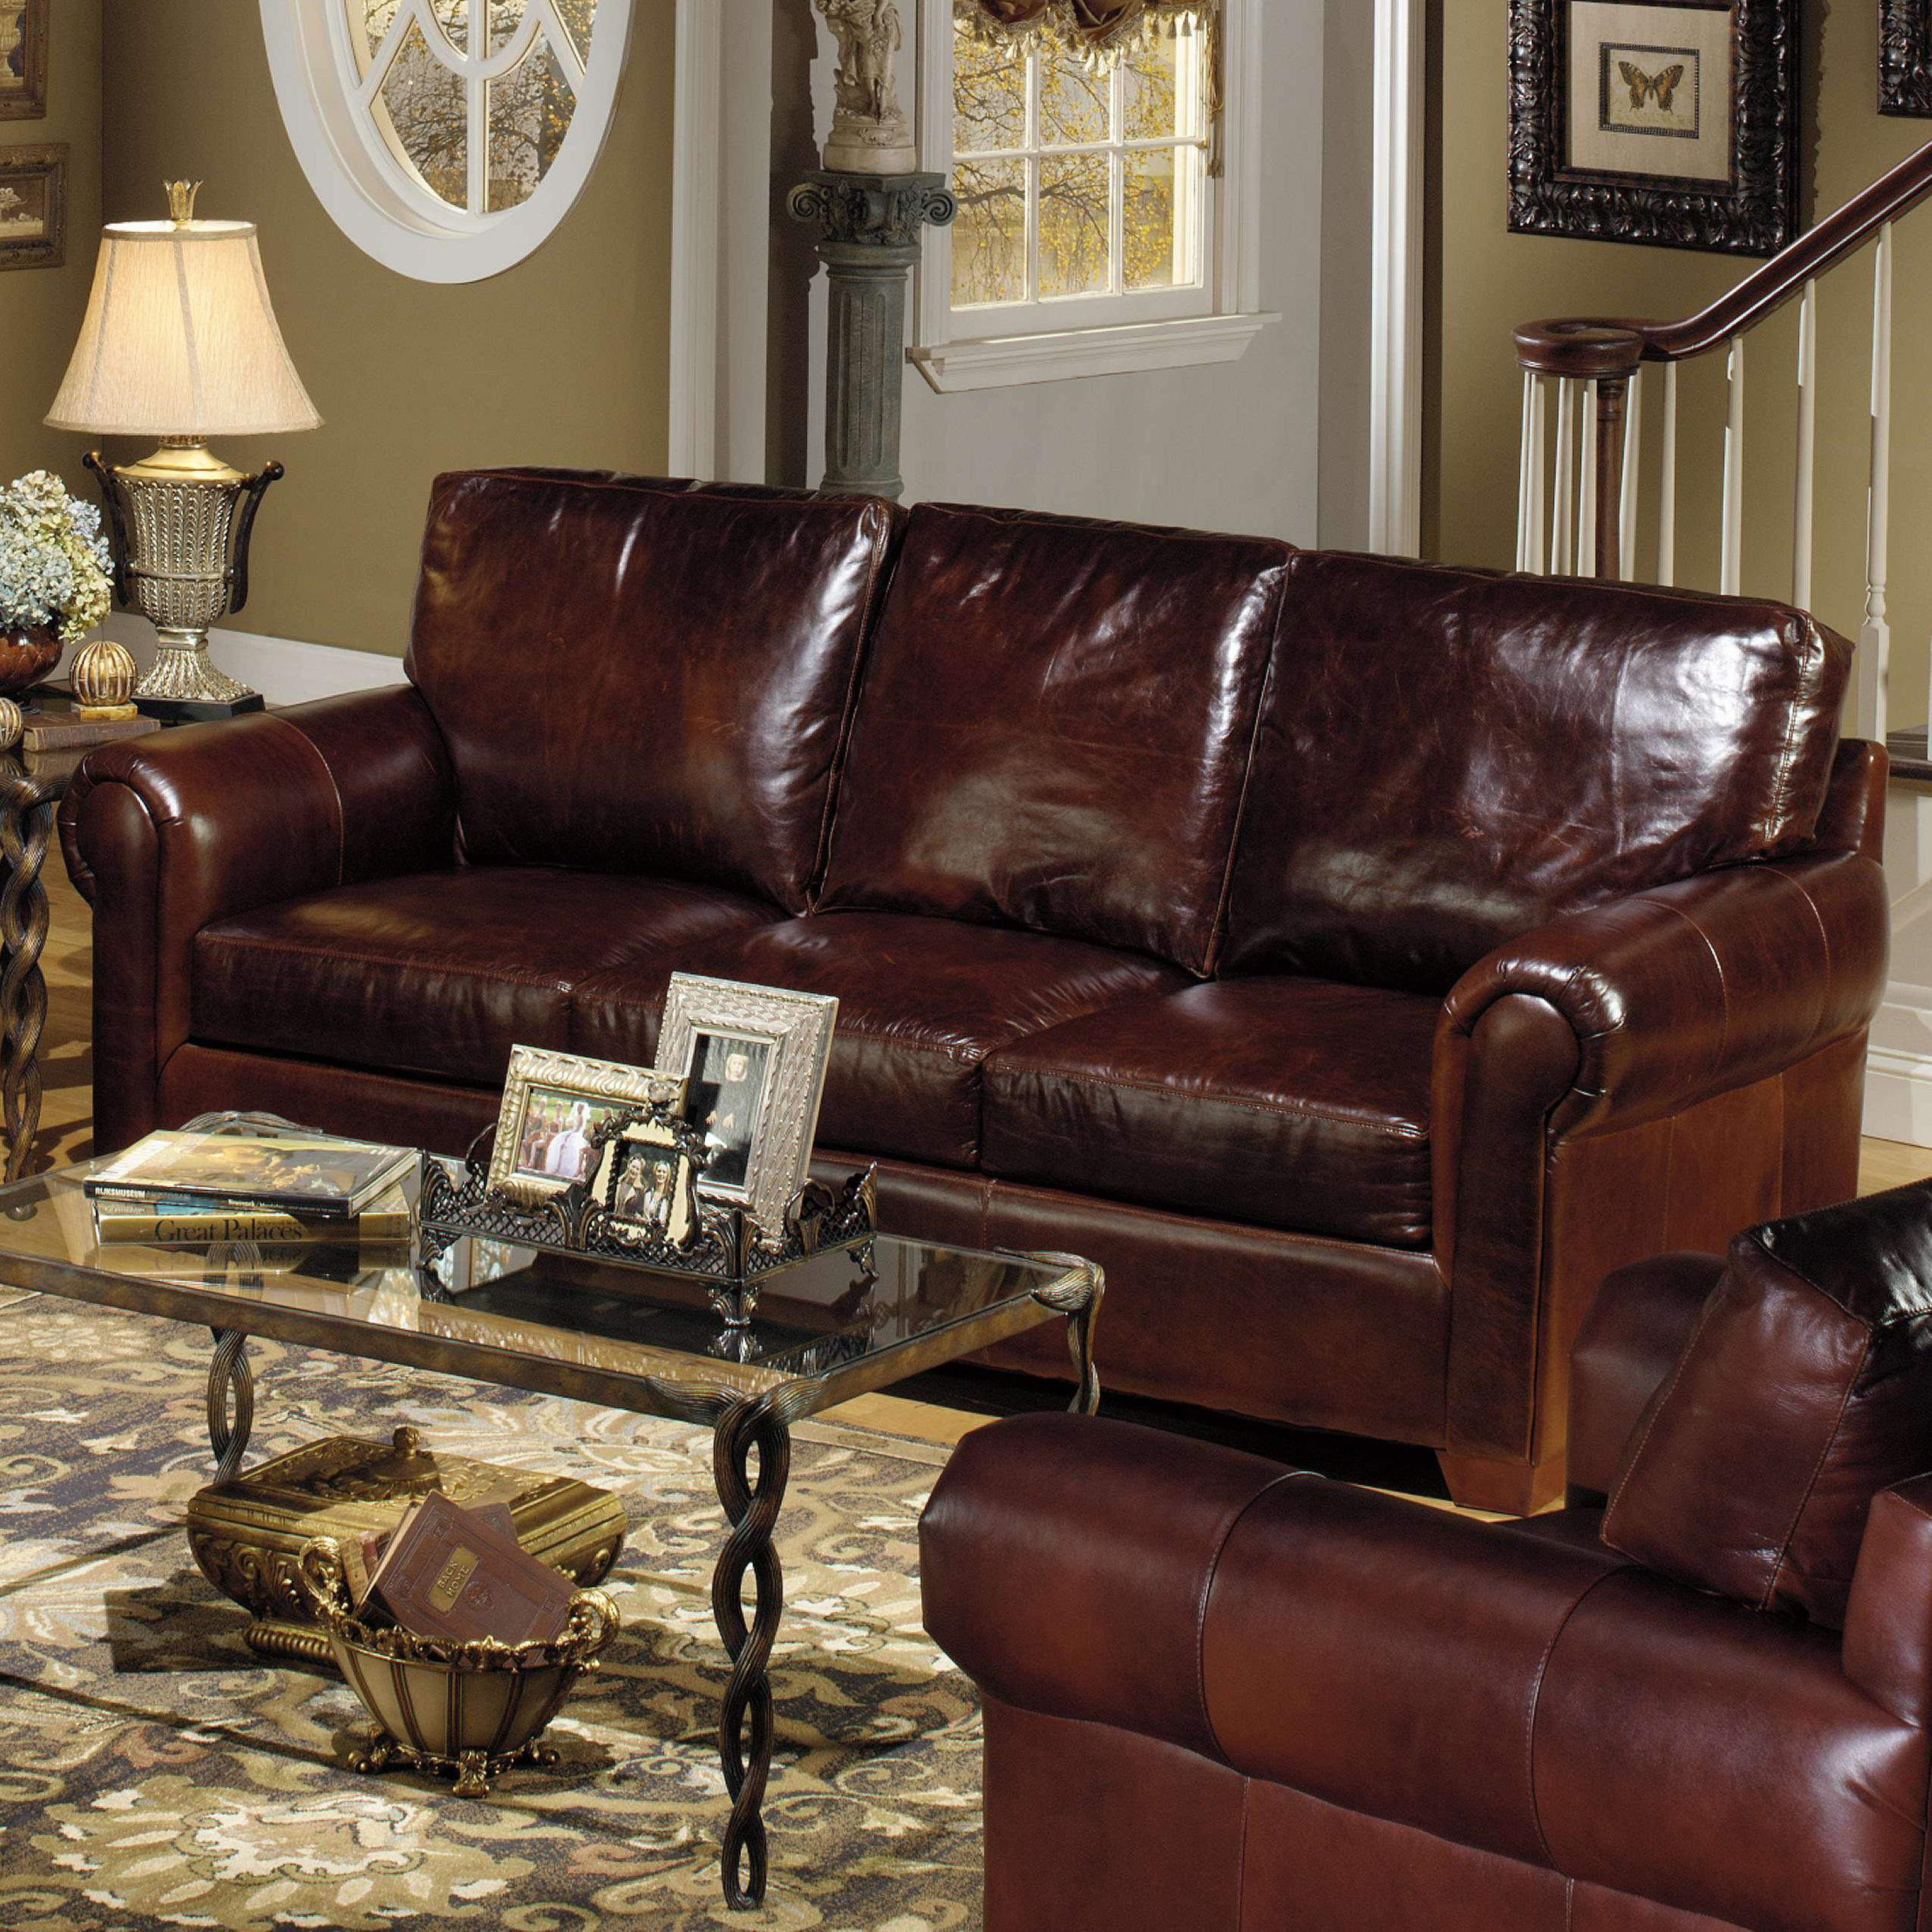 Super Usa Premium Leather 8955 Leather Stationary Sofa Ocoug Best Dining Table And Chair Ideas Images Ocougorg